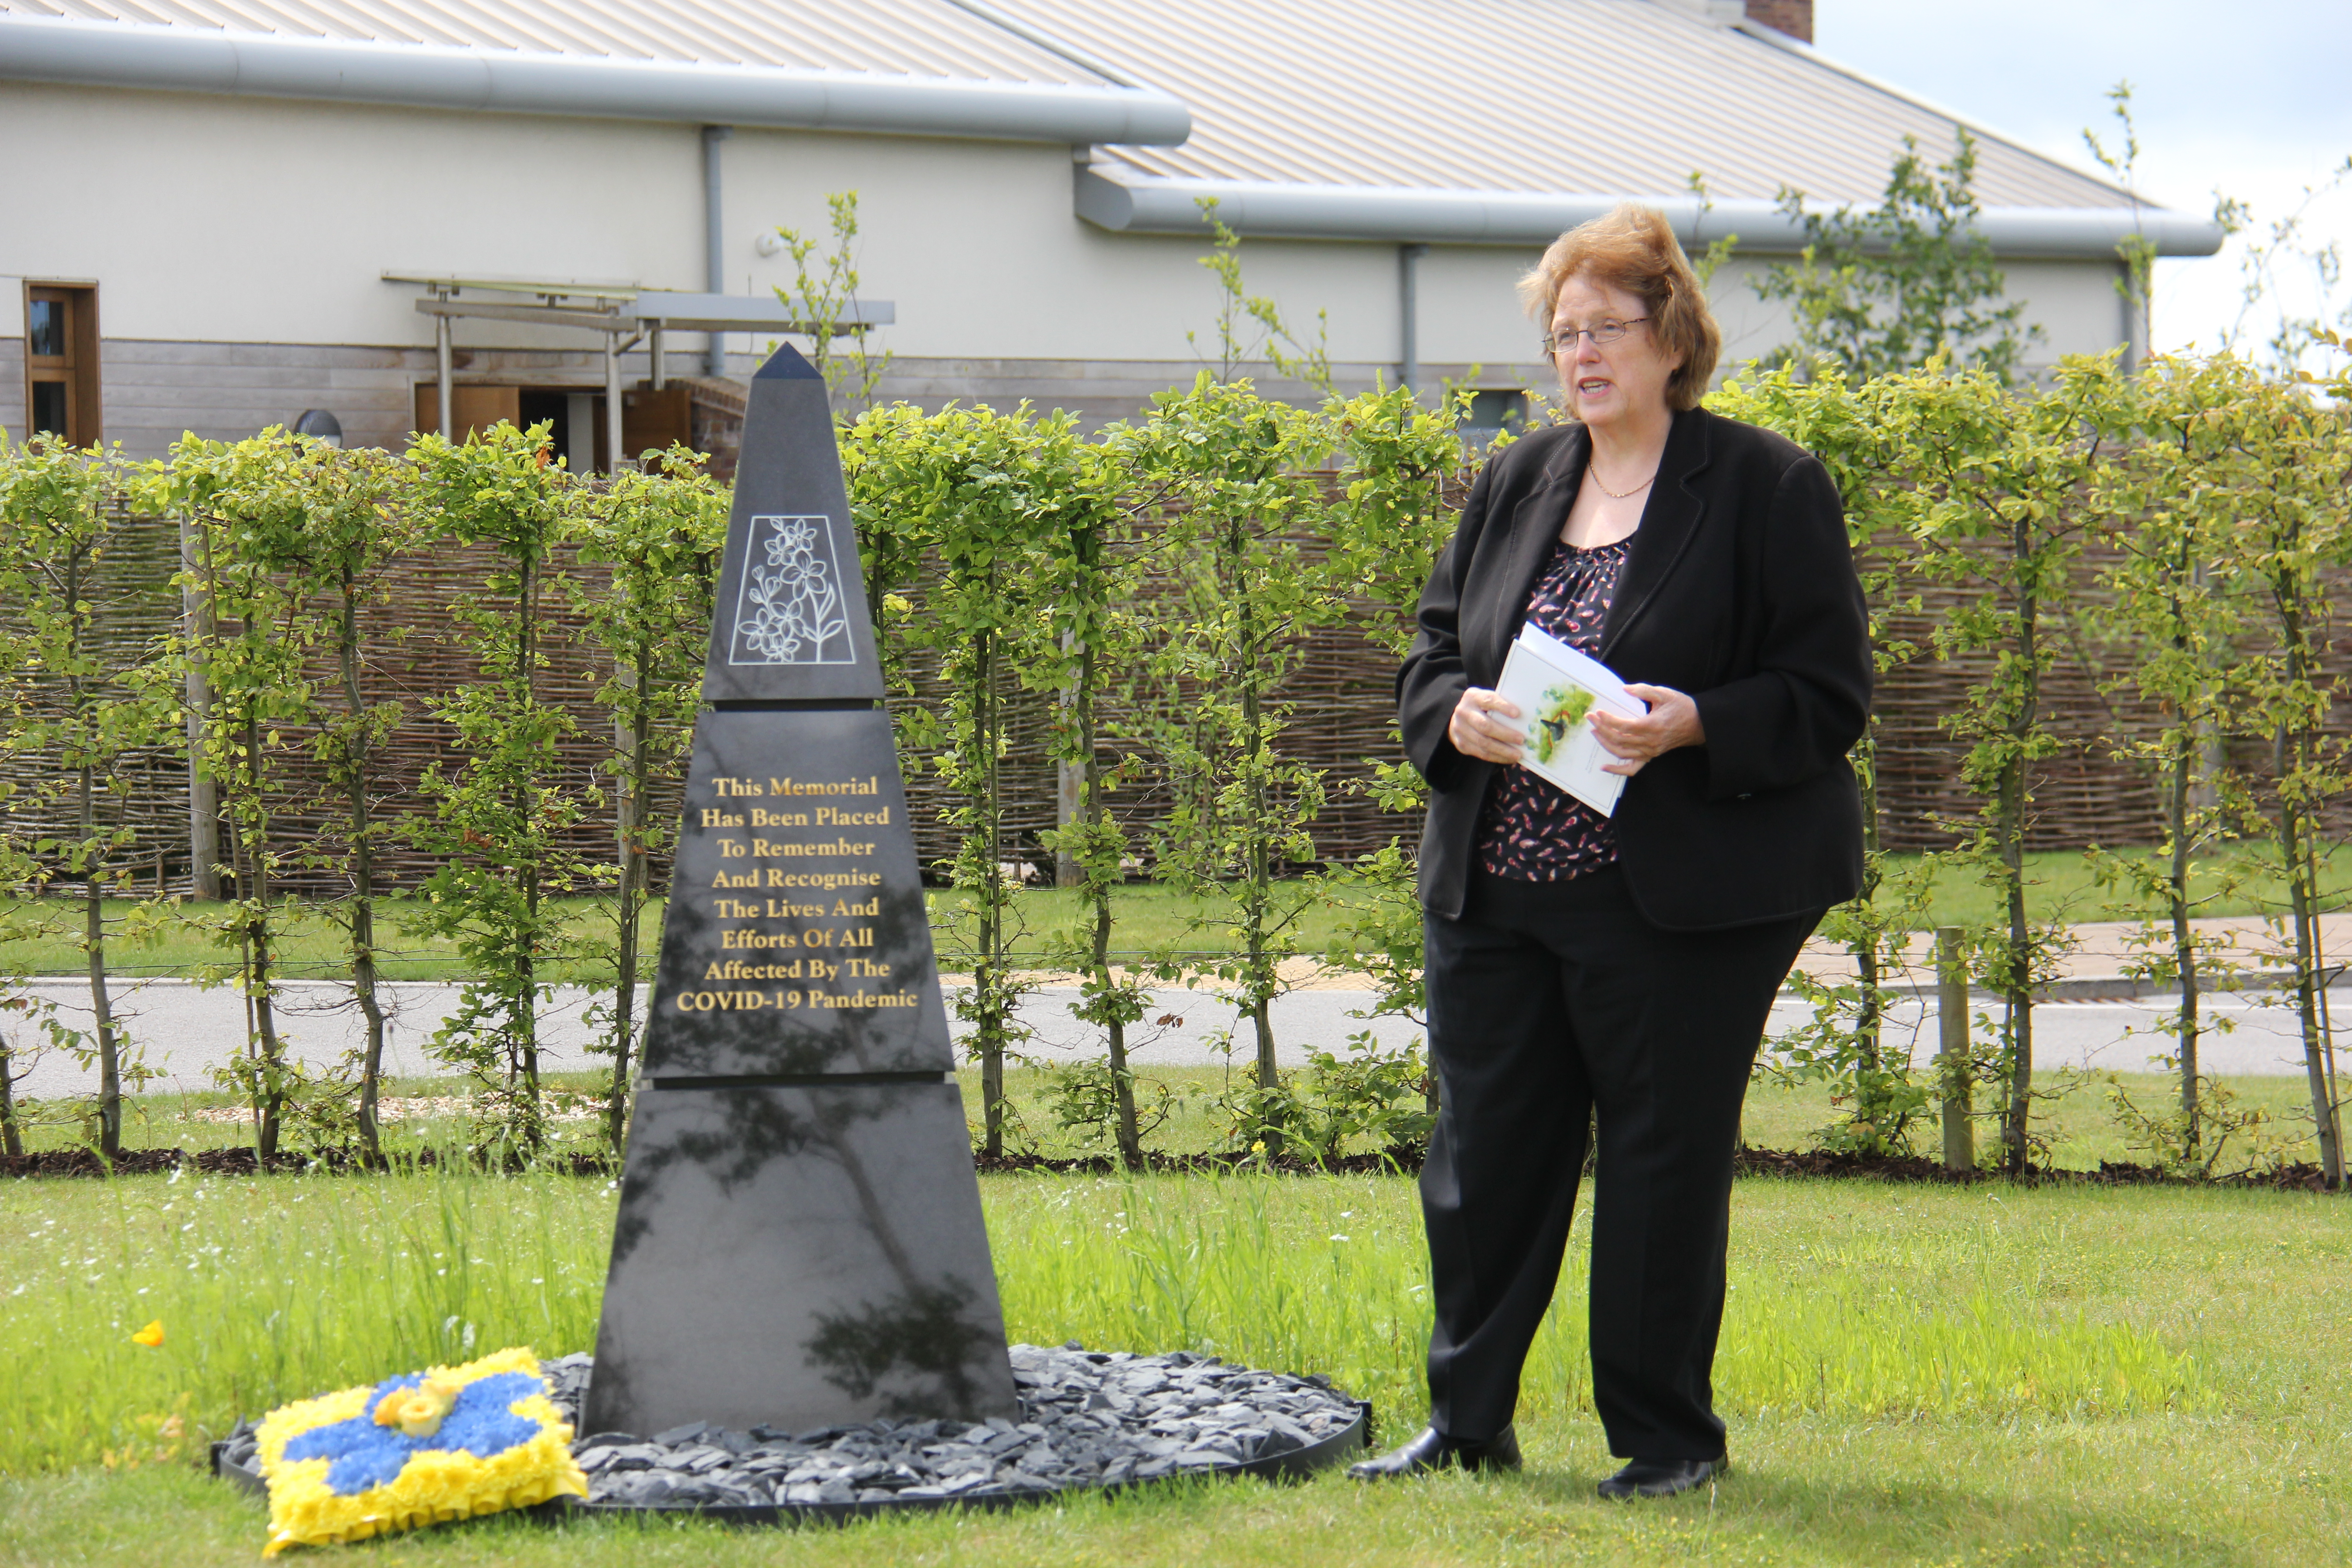 Covid memorial is unveiled at cemetery